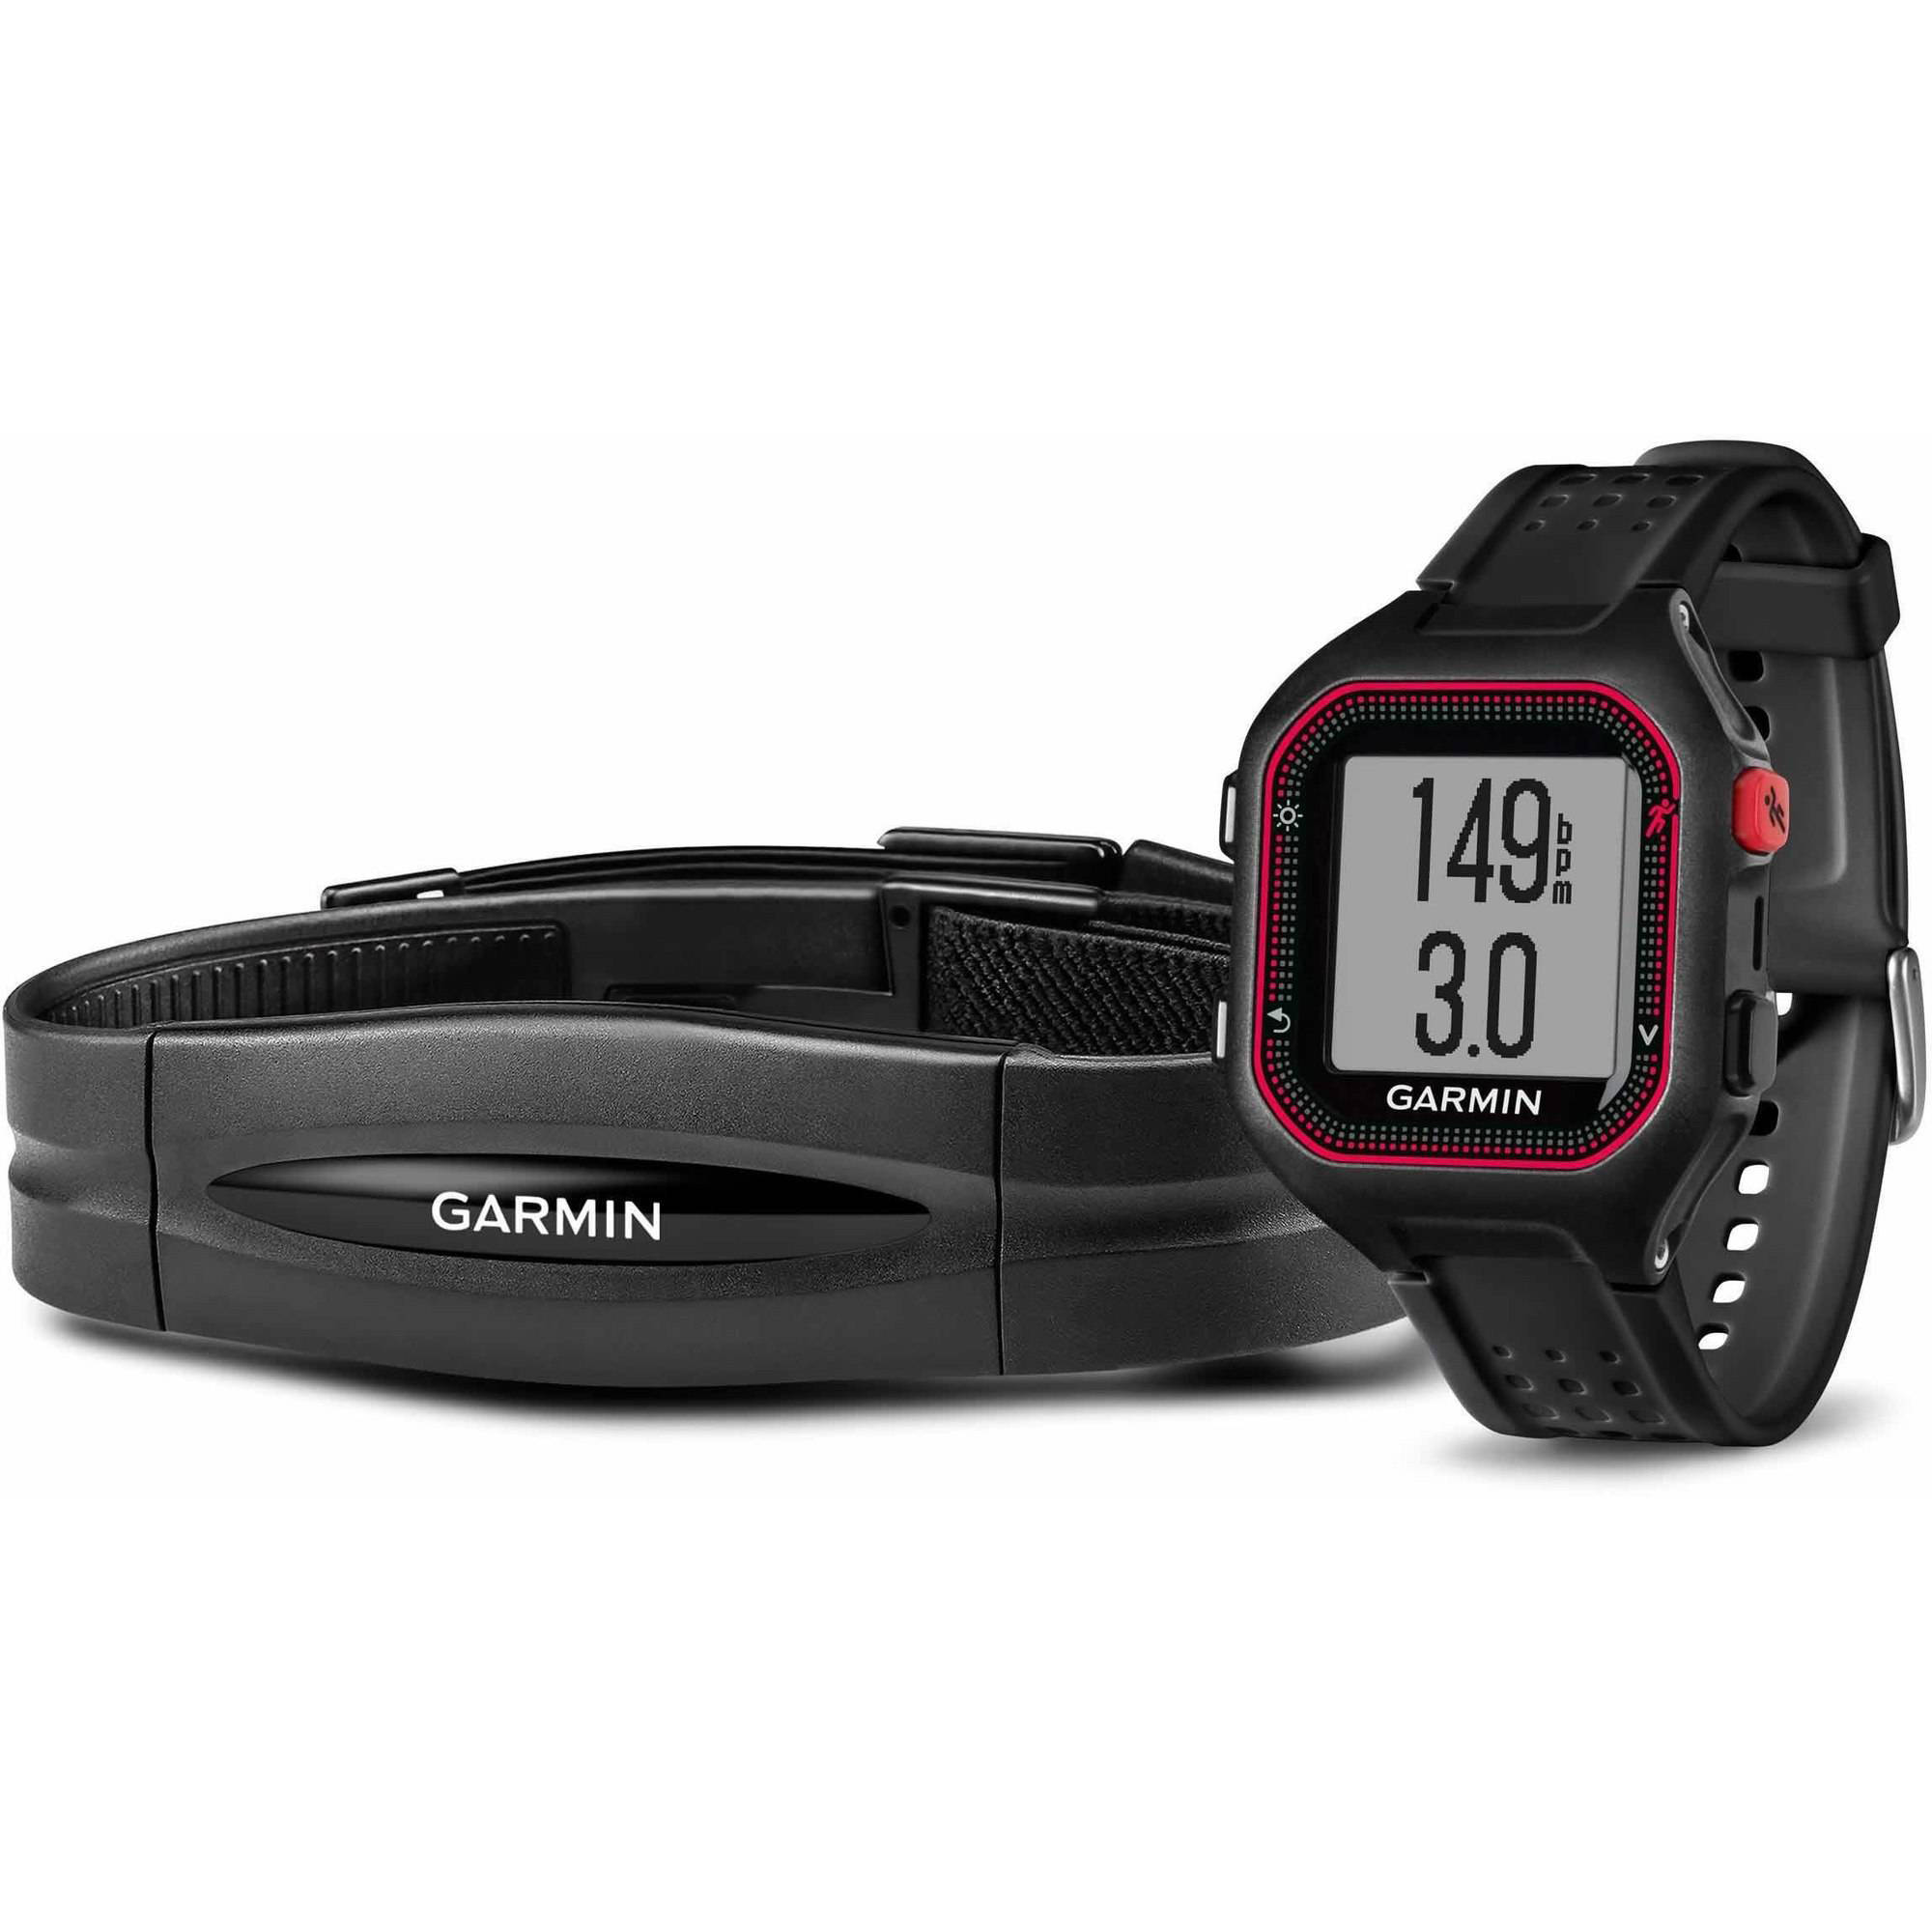 Garmin Forerunner 25 Bundle with Heart Rate Monitor